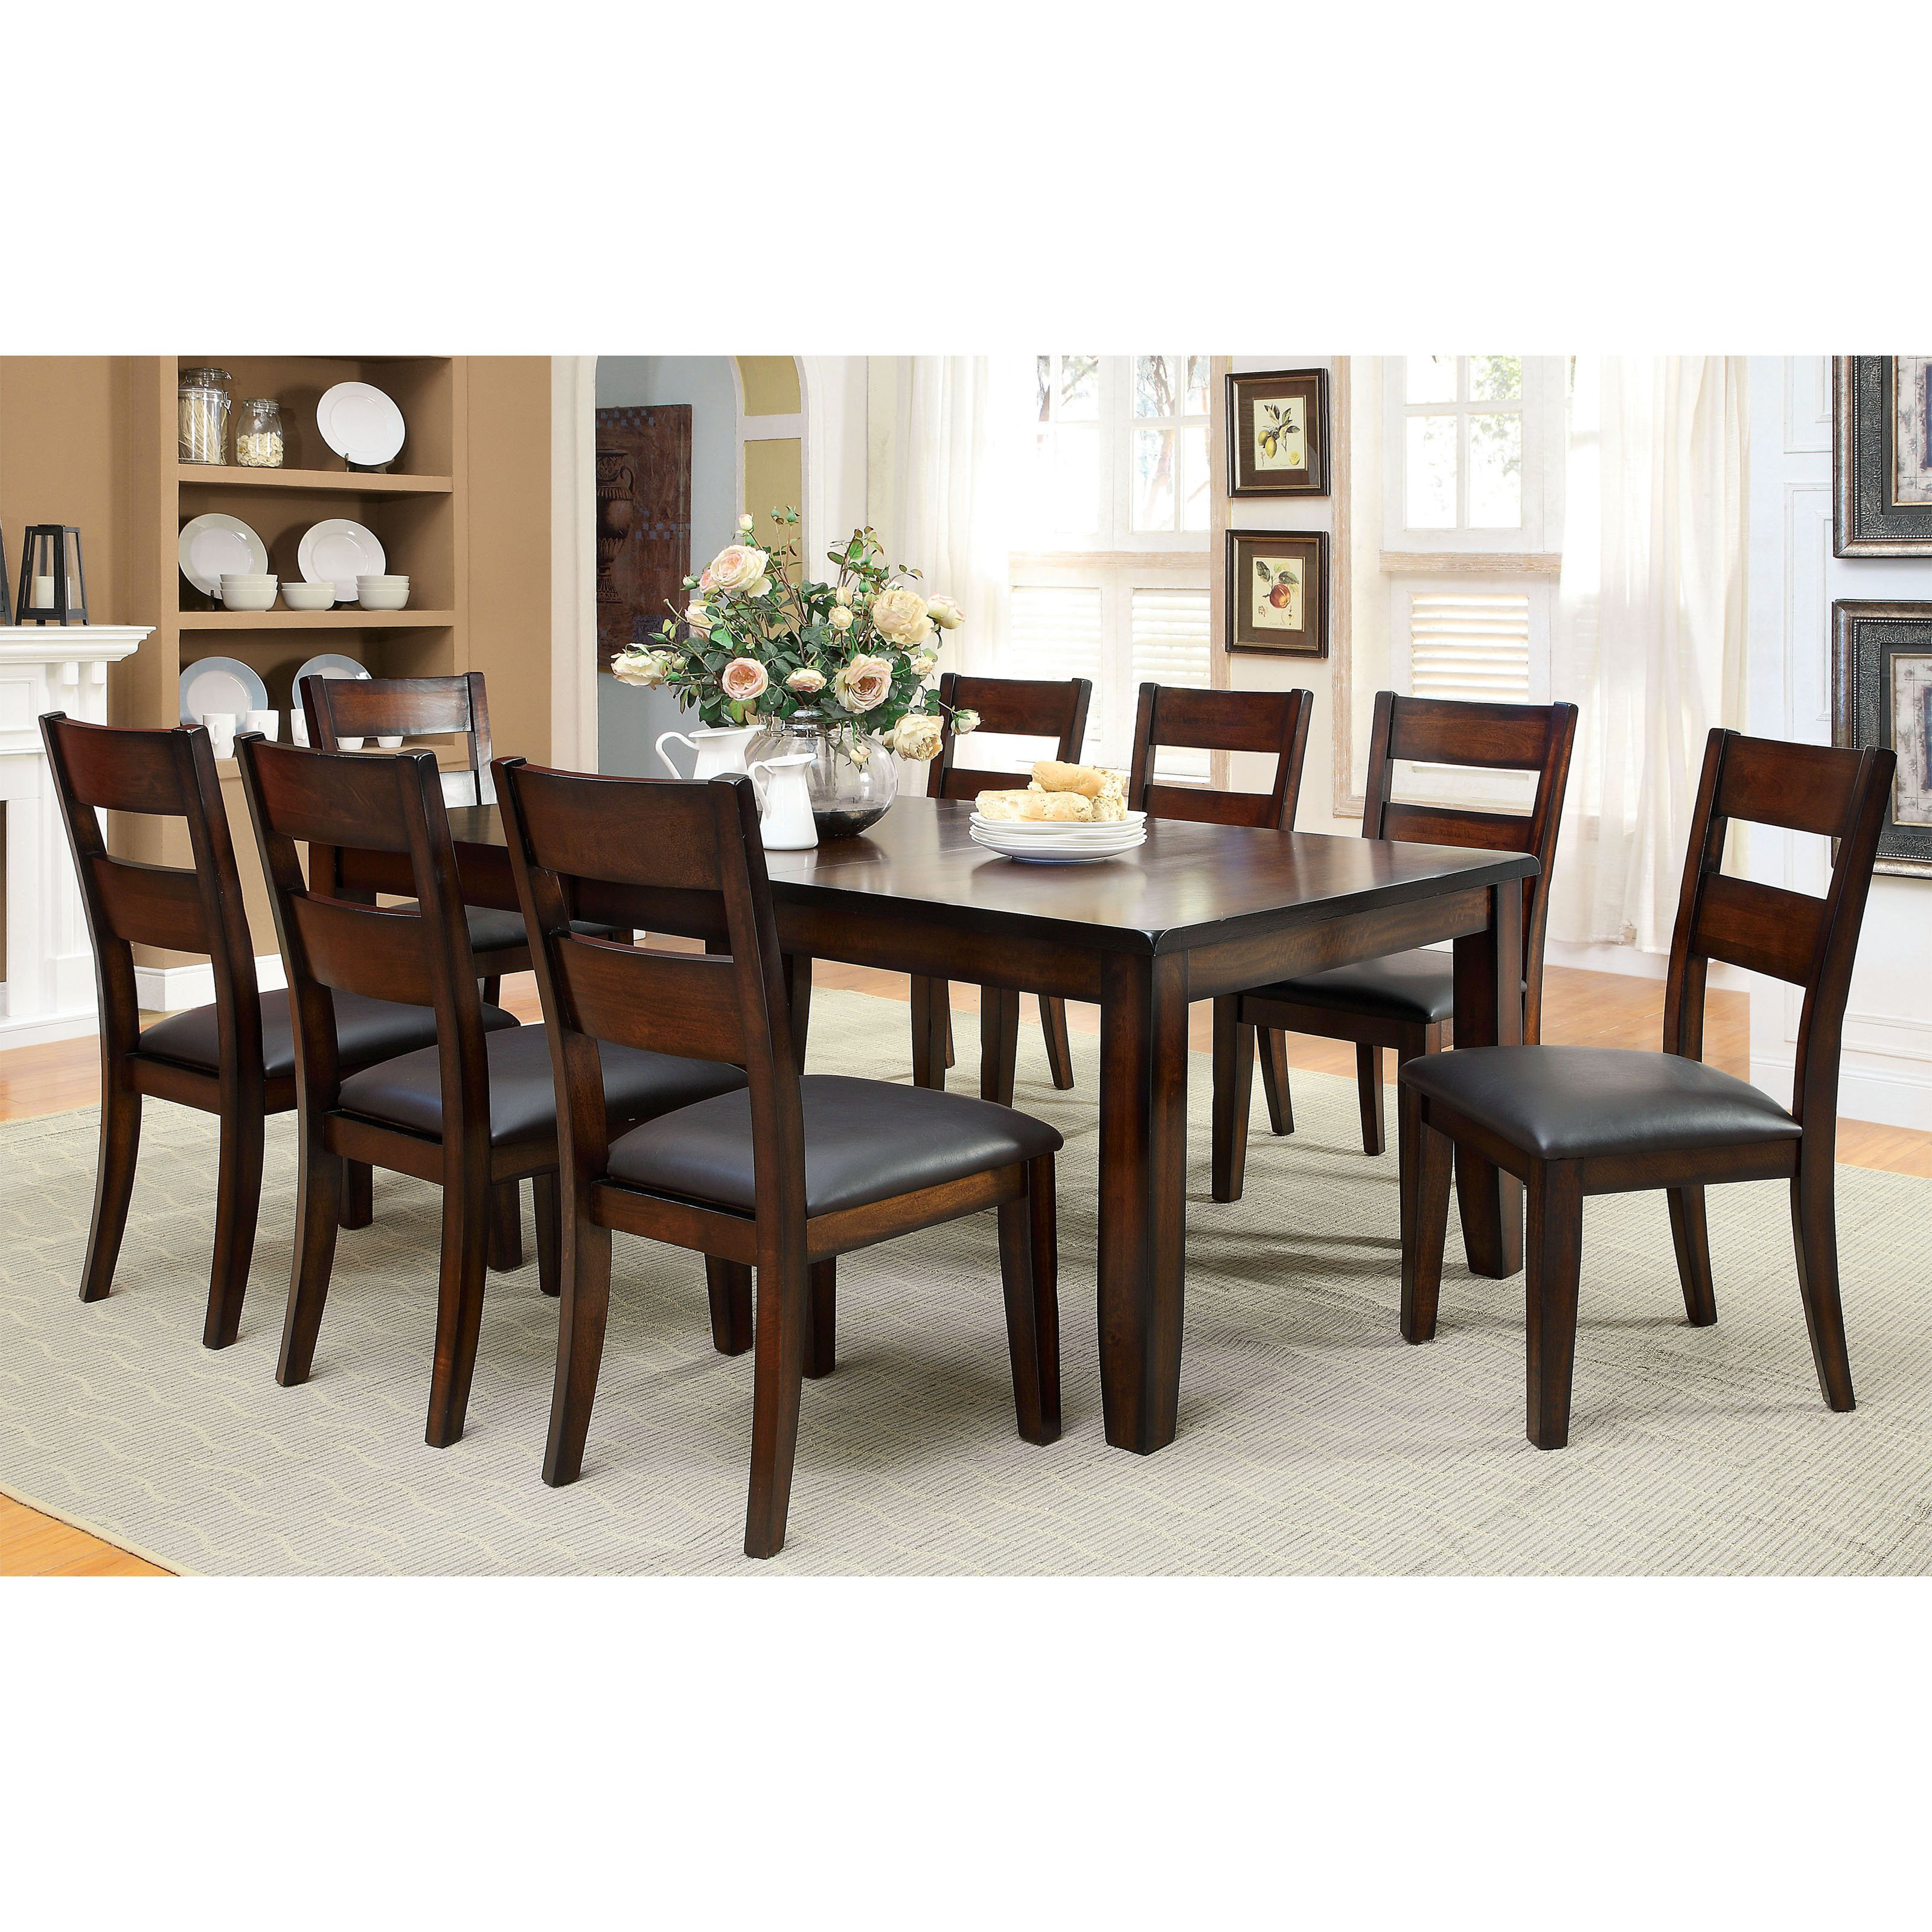 Furniture Of America Gibson Bold 9 Piece Dining Table Set Walmart Com